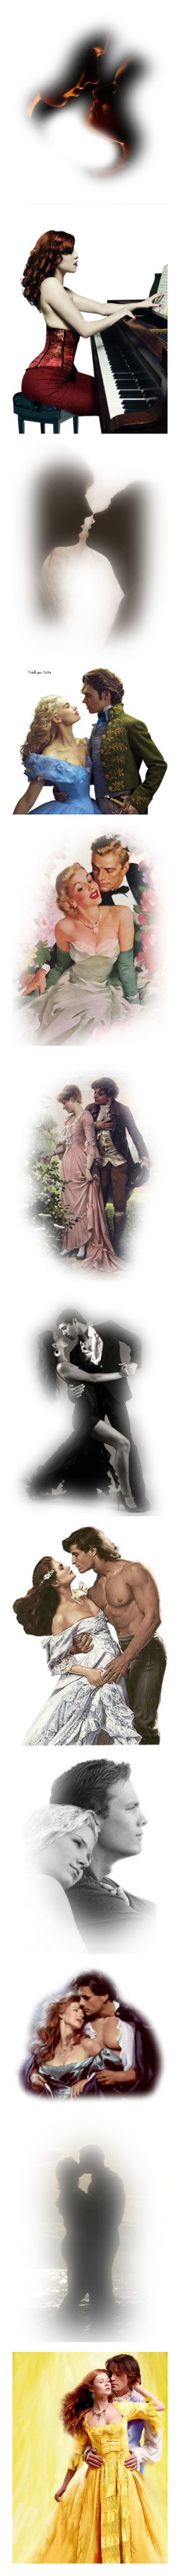 """""""Together"""" by mt3fisher ❤ liked on Polyvore featuring backgrounds, couples, effects, faces, people, music, tubes, cinderella, black and white and tube couple"""